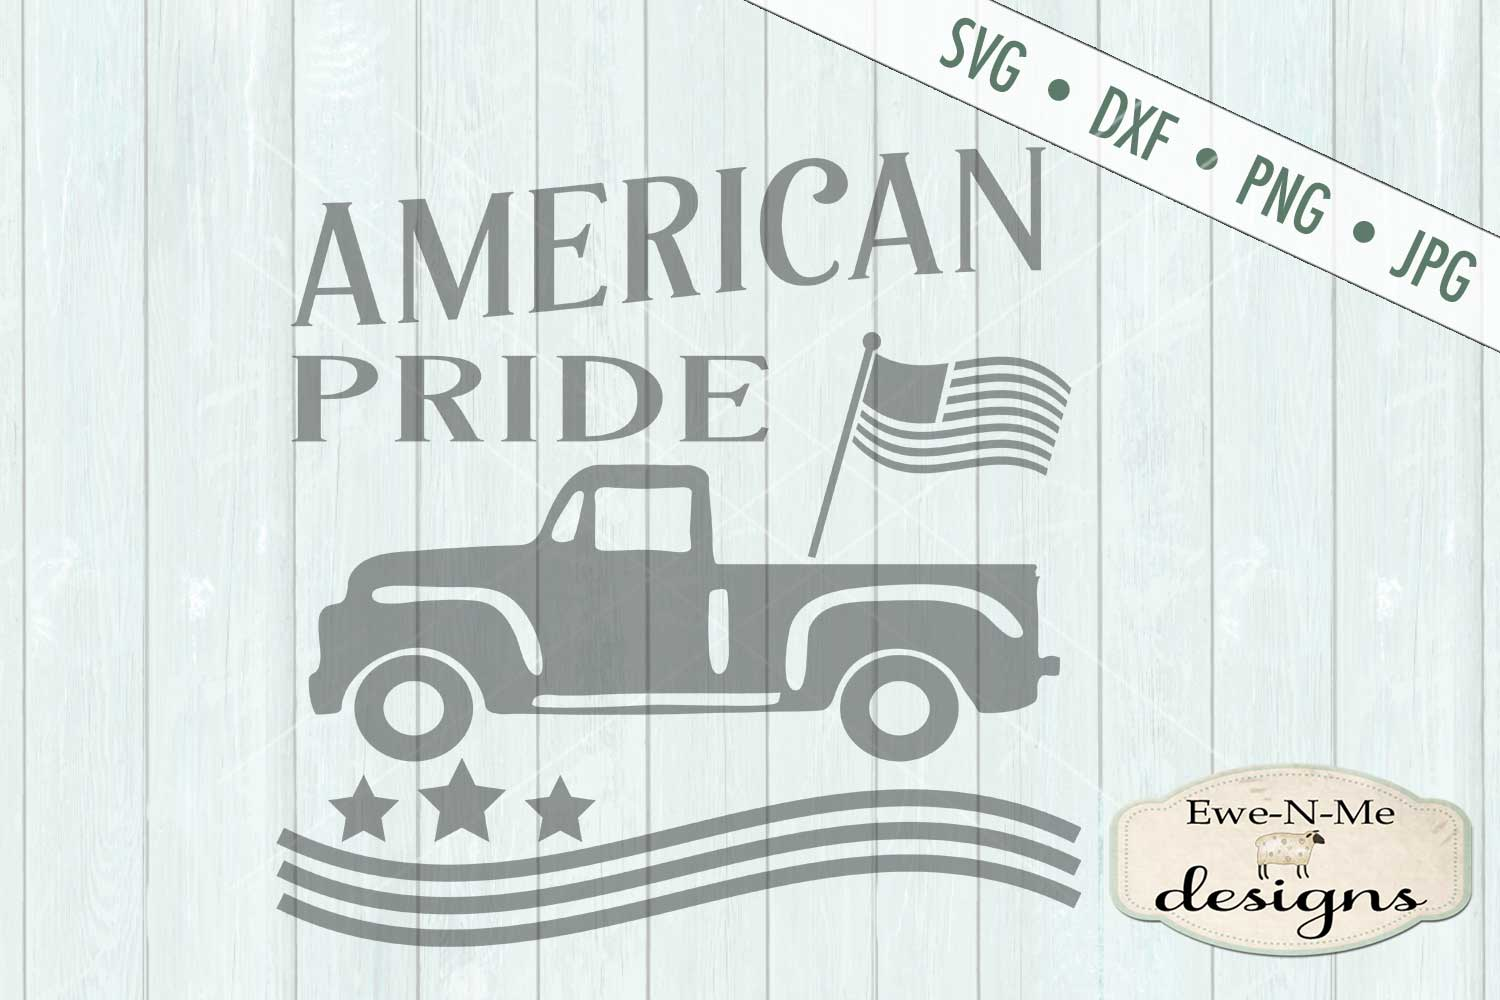 American Pride - Vintage Truck - Flag 4th of July - SVG DXF example image 3